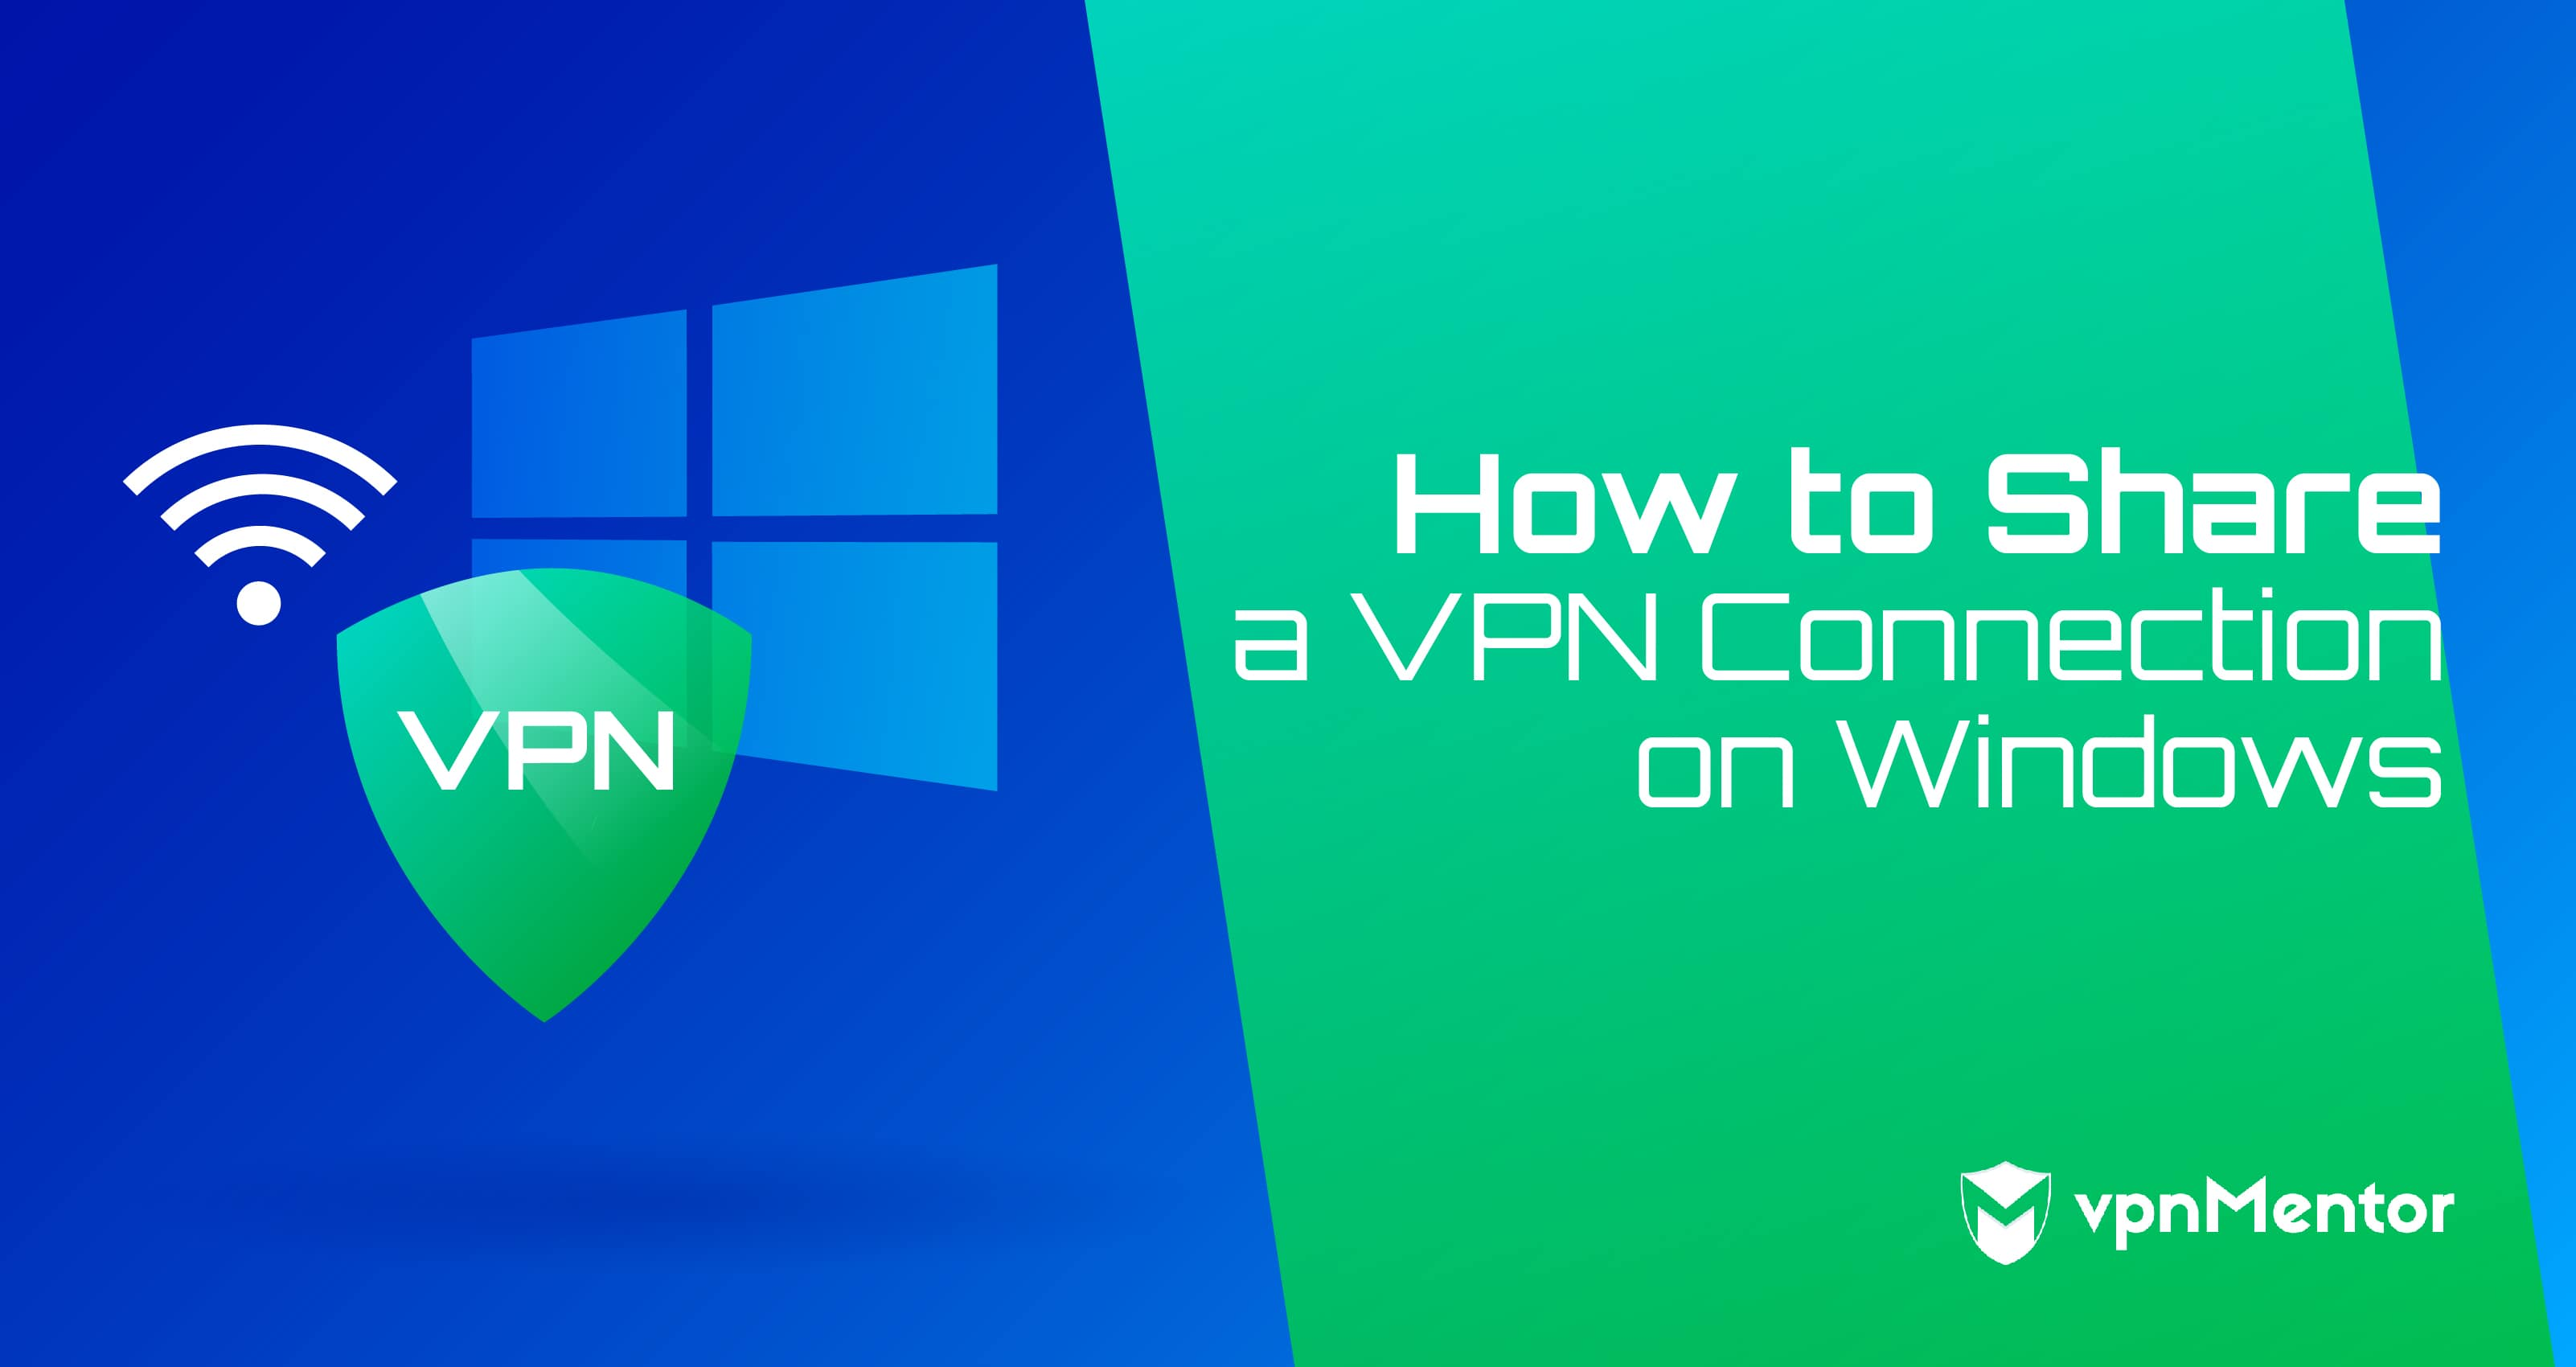 how to share a vpn connection on windows